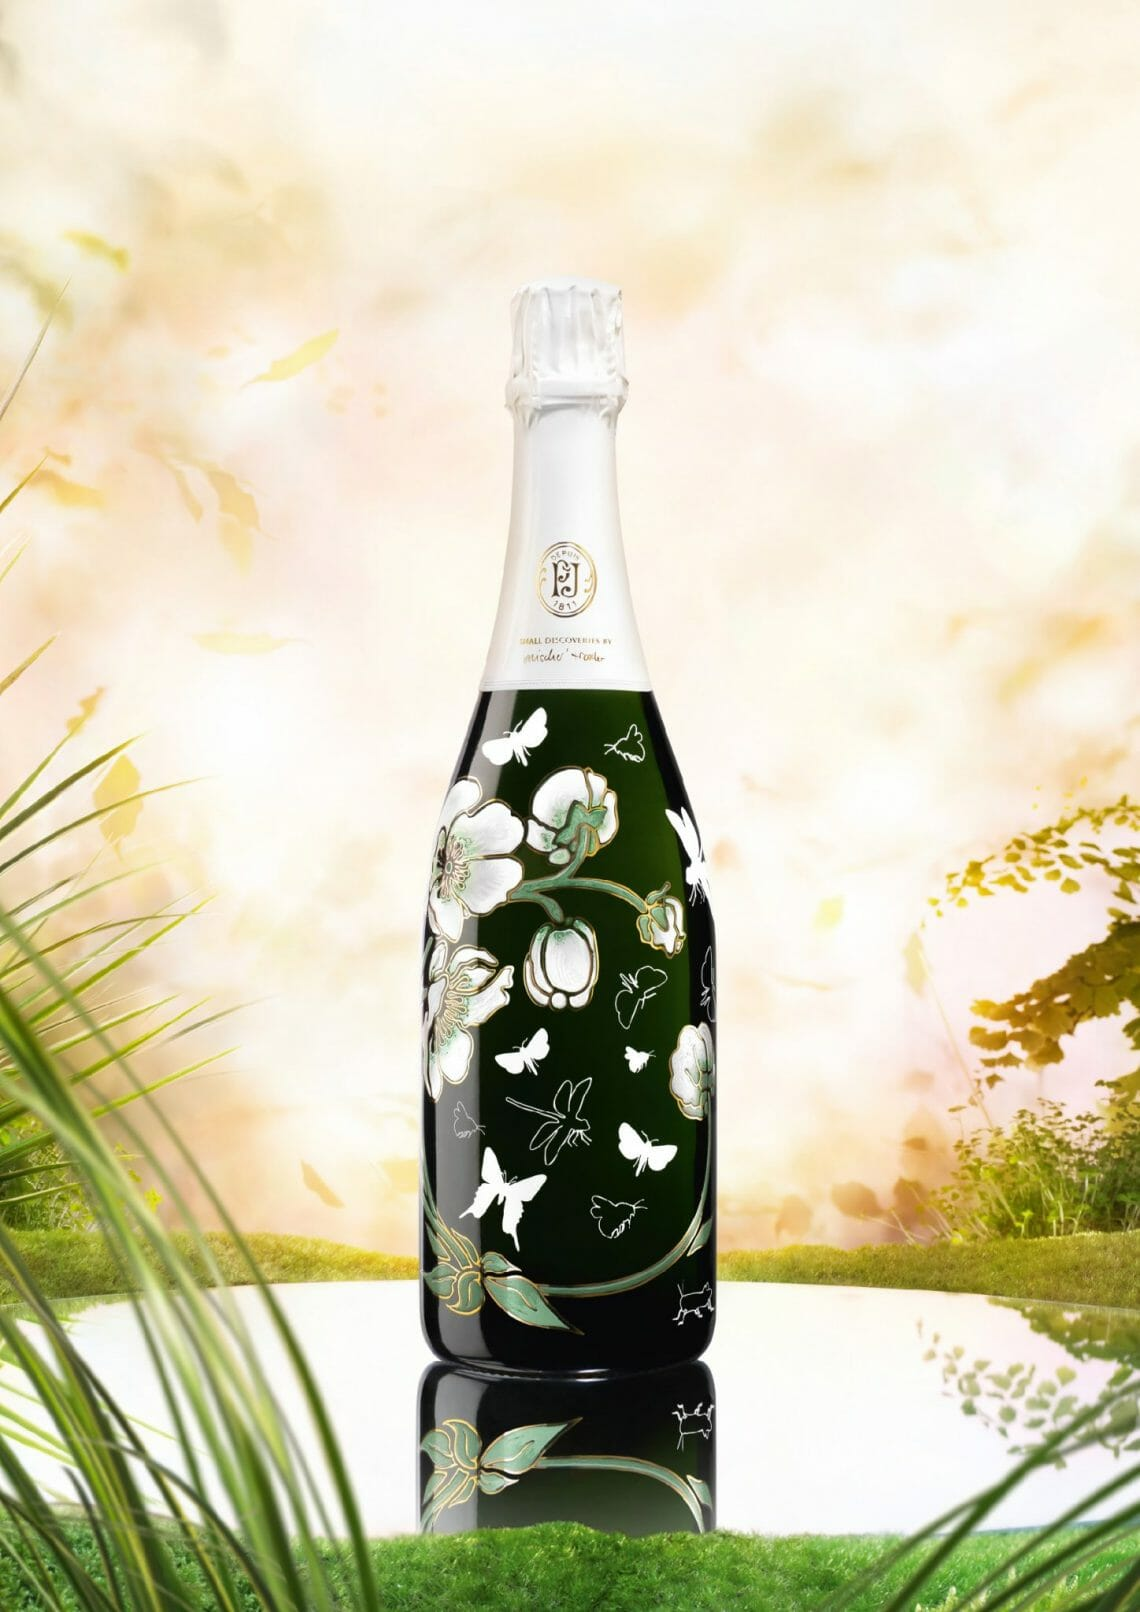 Small Discoveries Belle Epoque Perrier-Jouët Limited Edition Champagne: Flowers, Butterflies and 'small discoveries' - EAT LOVE SAVOR International Luxury Lifestyle Magazine